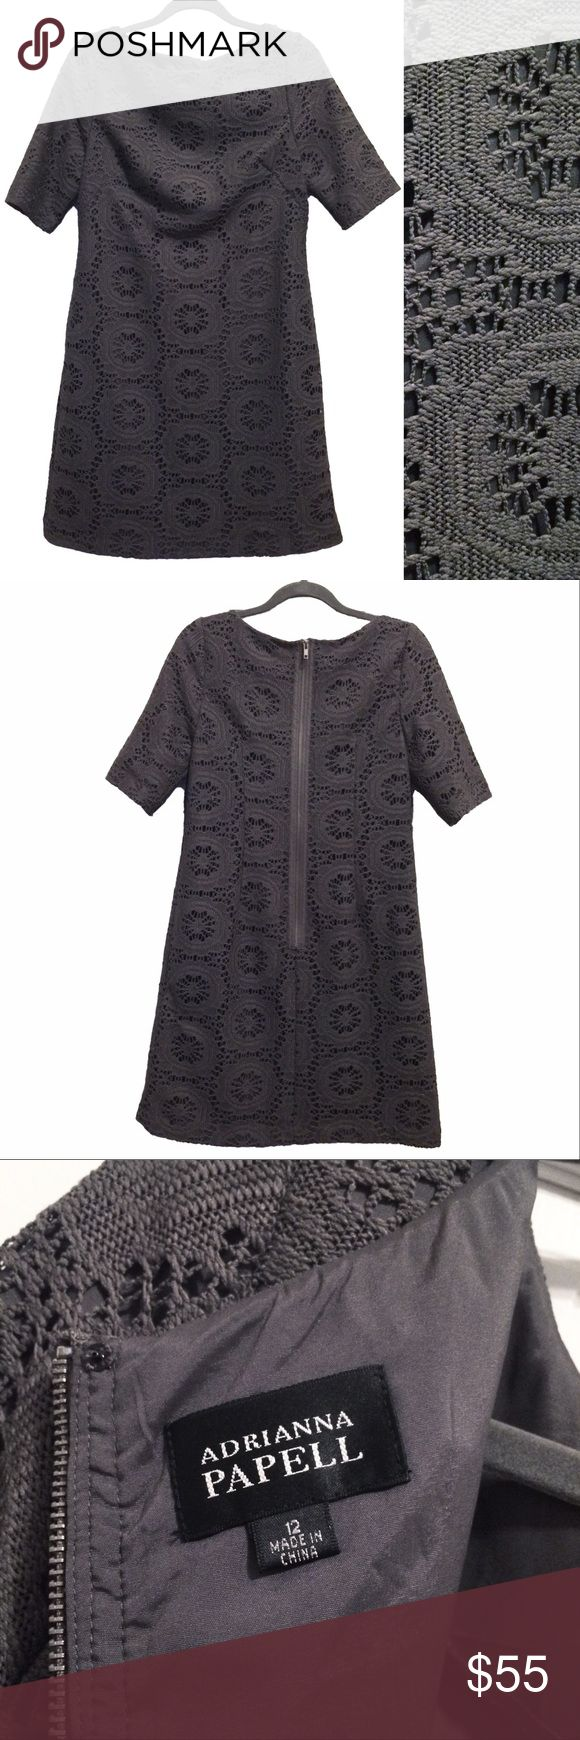 "Adrianna Papell crochet / lace shift dress Dark warm grey / charcoal crochet / lace dress with liner. Professional and stylish. Circa 2010/2011. Model pic from Nordstrom website to show drape and fit only. No stretch to thick fabric. Minor pull but easy fix/not visible when worn. (see pic) Short sleeves, darts on chest for a fitted look to chest. Perfect for work. Lay flat measures approx: pit to pit 18.5"", waist 20.5"", neck 10.5"", length 36.5"", arms 5"" Adrianna Papell Dresses"